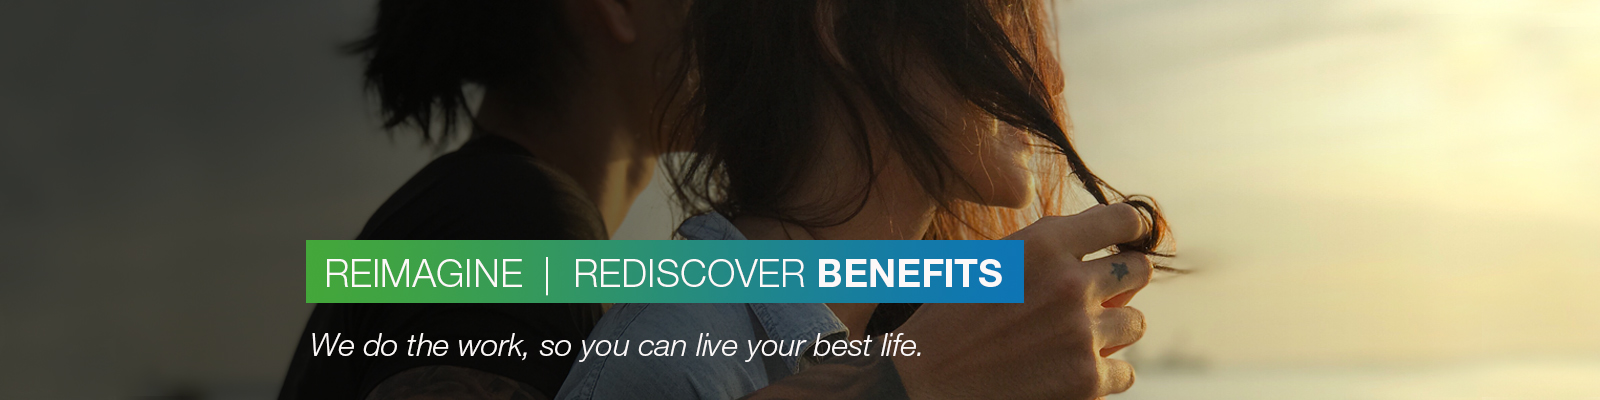 REIMAGINE | REDISCOVER BENEFITS: We do the work, so you can live your best life.